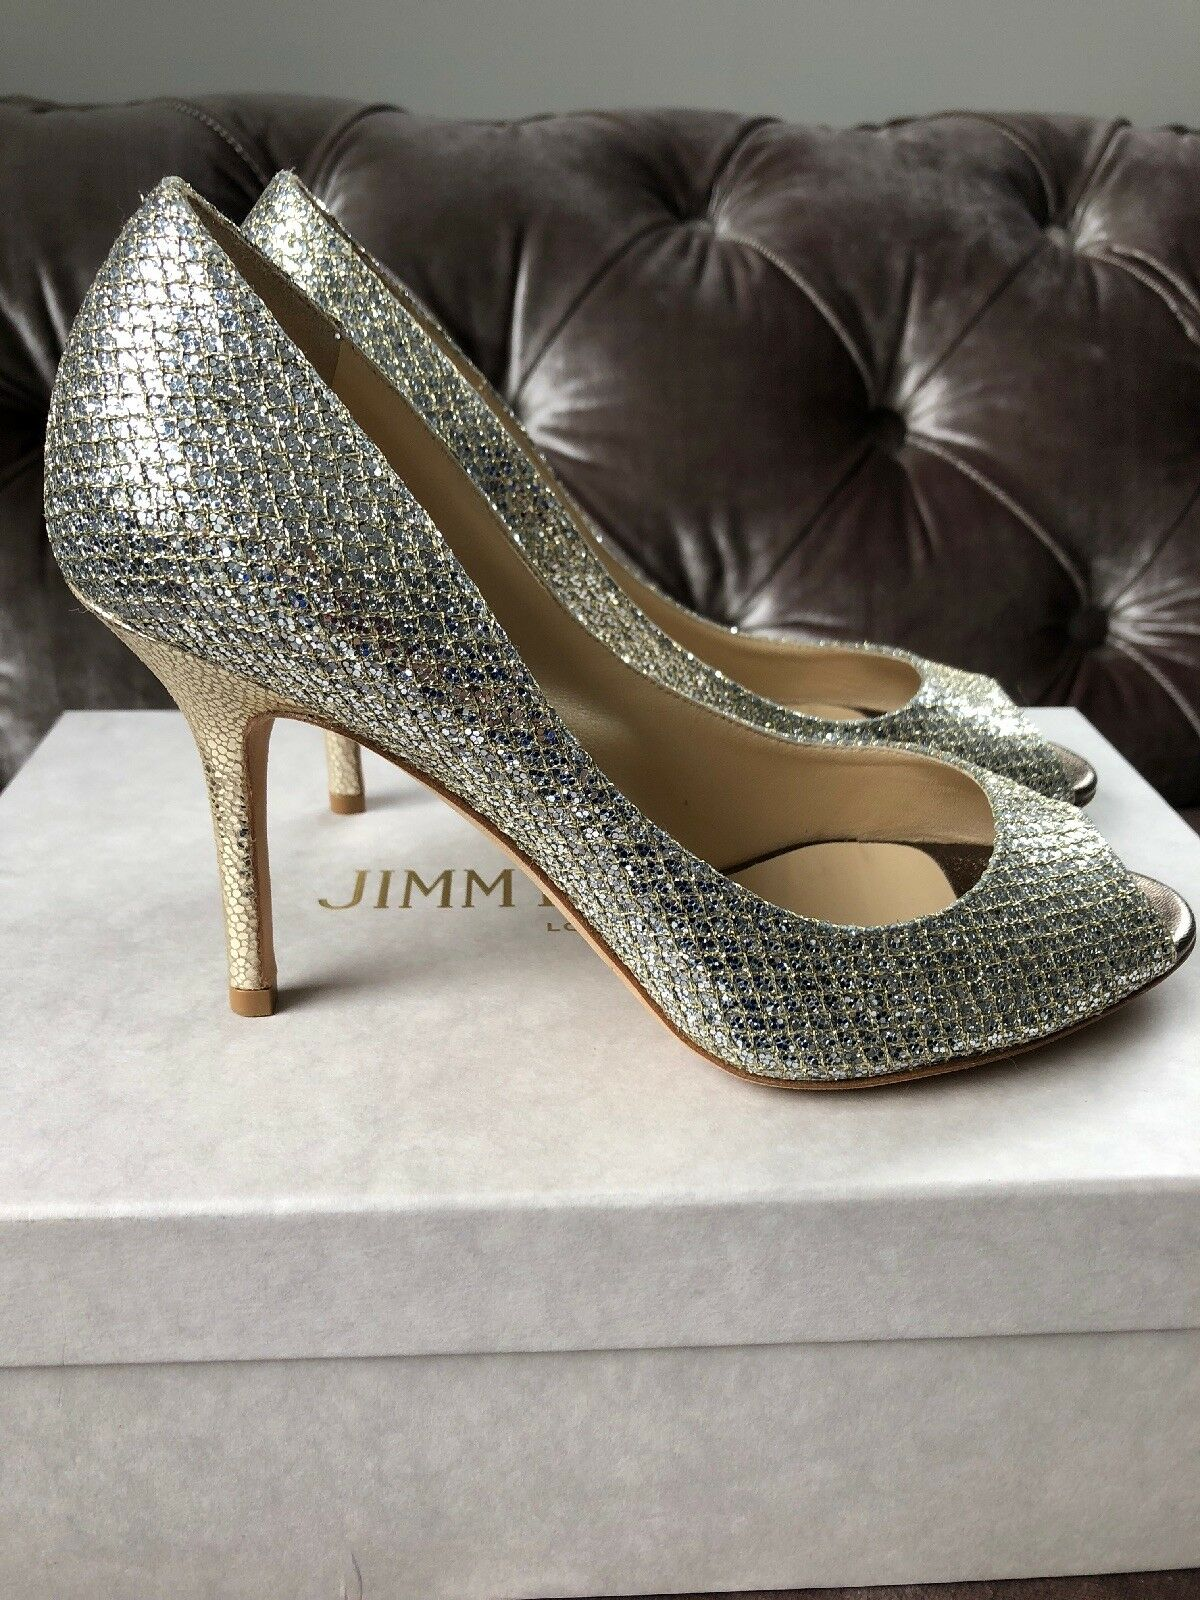 Jimmy Choo 'Evelyn' Champagne Silber Glitter Heels Peep Toe Pump Uk 3 Eu 36